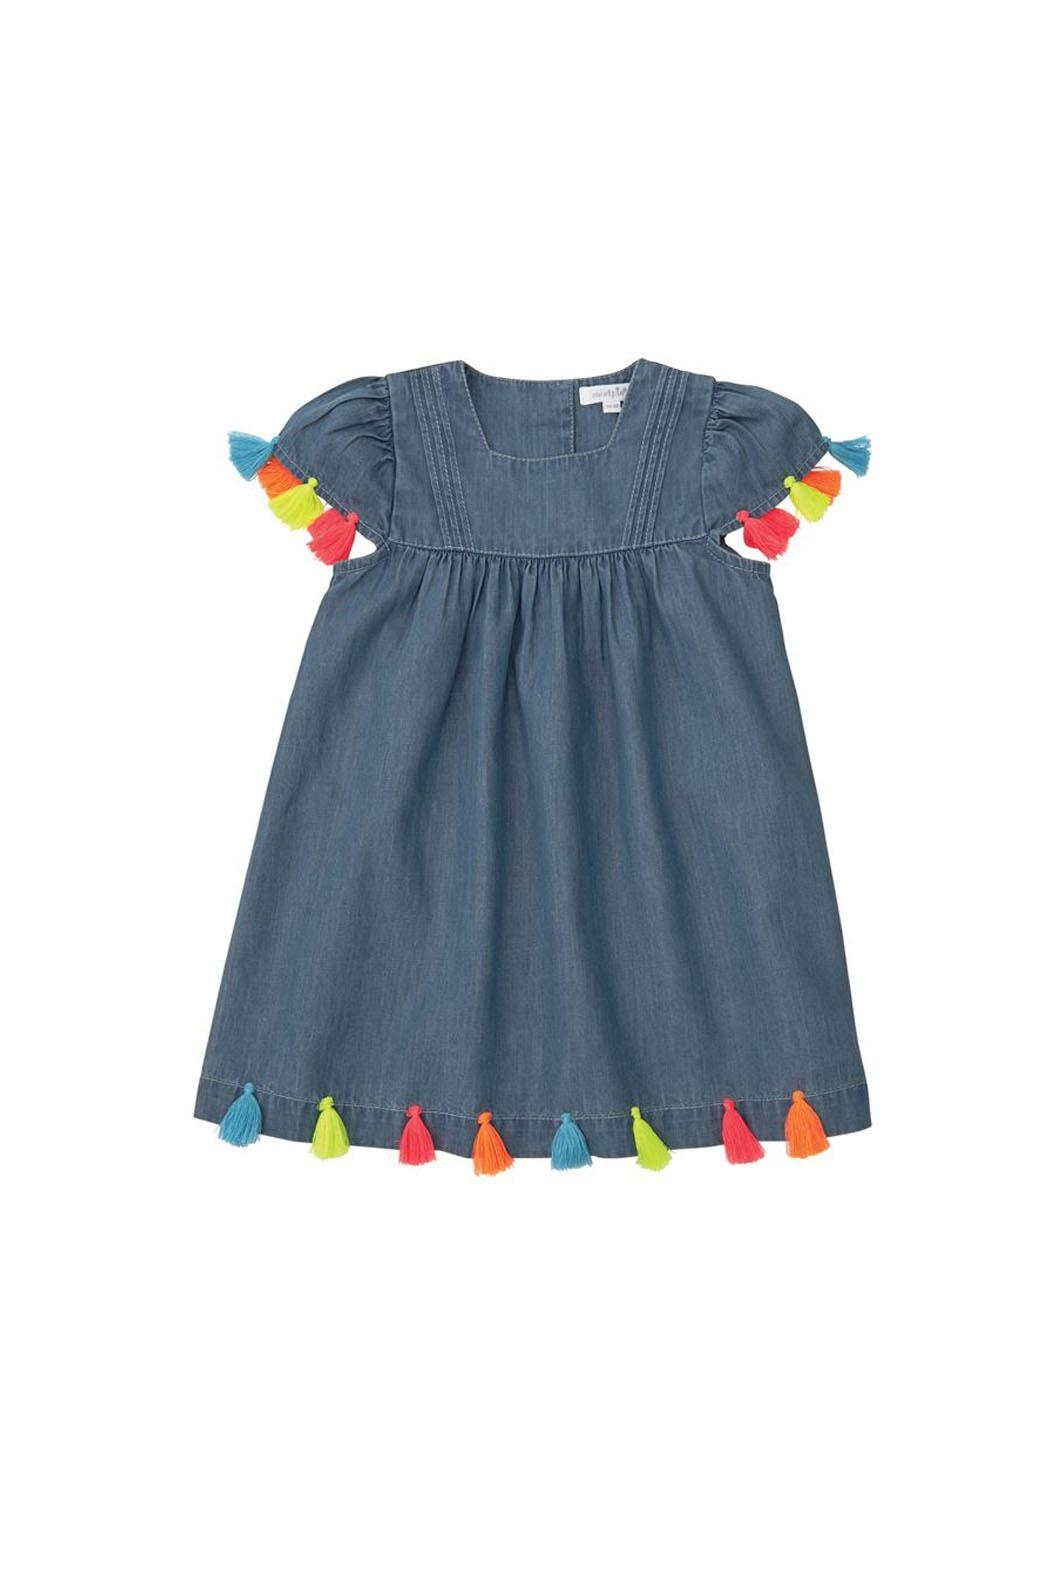 MUDPIE Hot Tassel Dress - Main Image